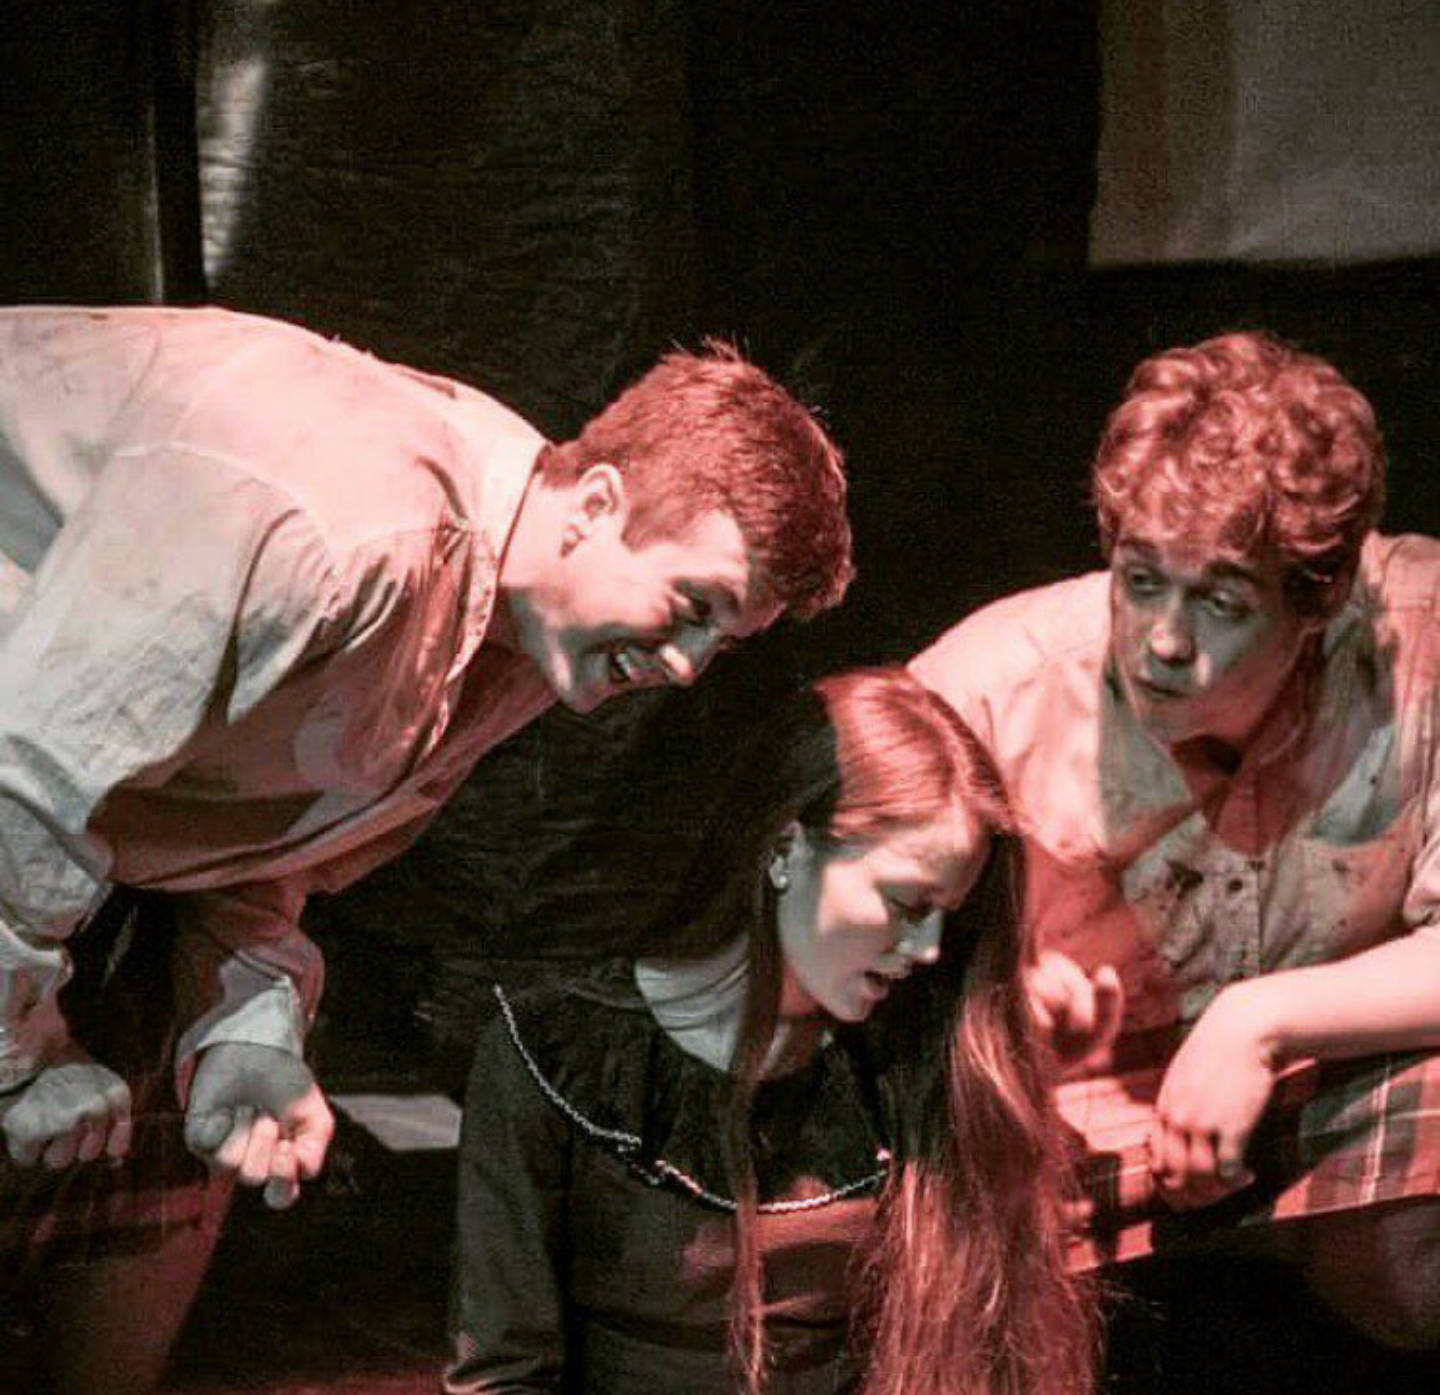 Mayla McArdle (center) portrays Mother Road in Tar and Feathers with senior Josh Davis (left) and alumnus Mitchell Worrell-Olsen (right).